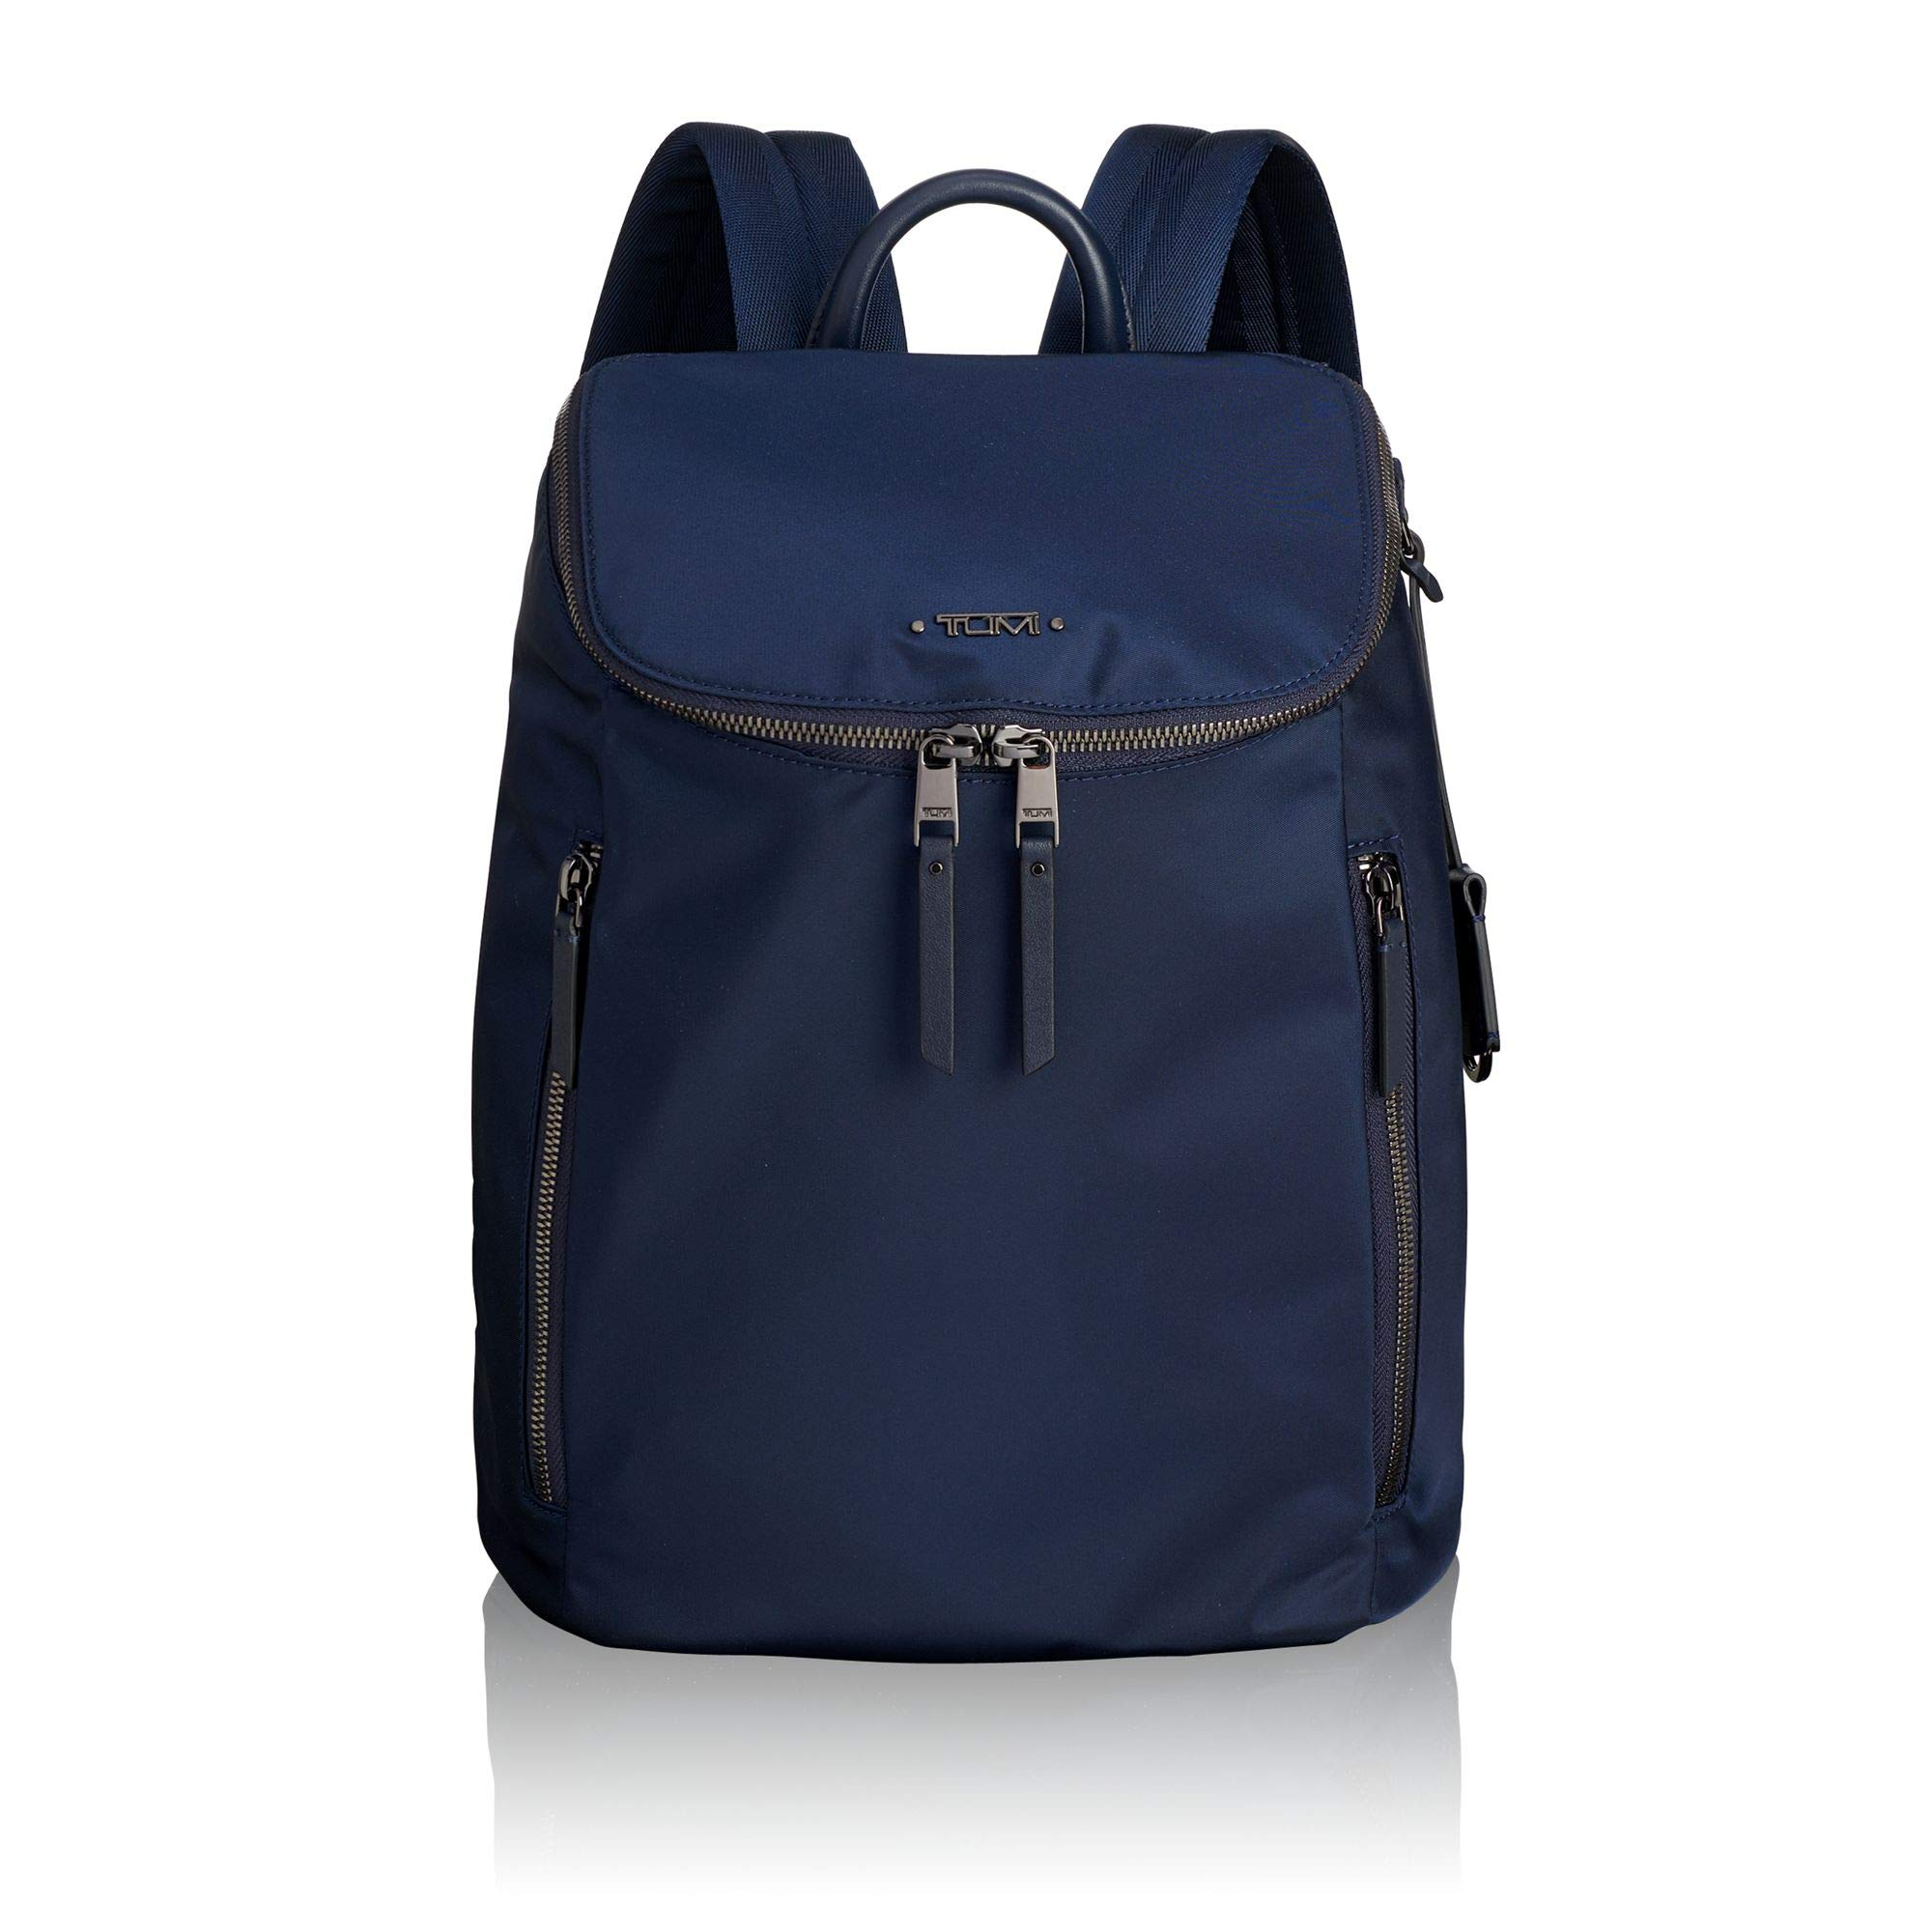 TUMI - Voyageur Bryce Backpack - Tablet Day Bag for Women